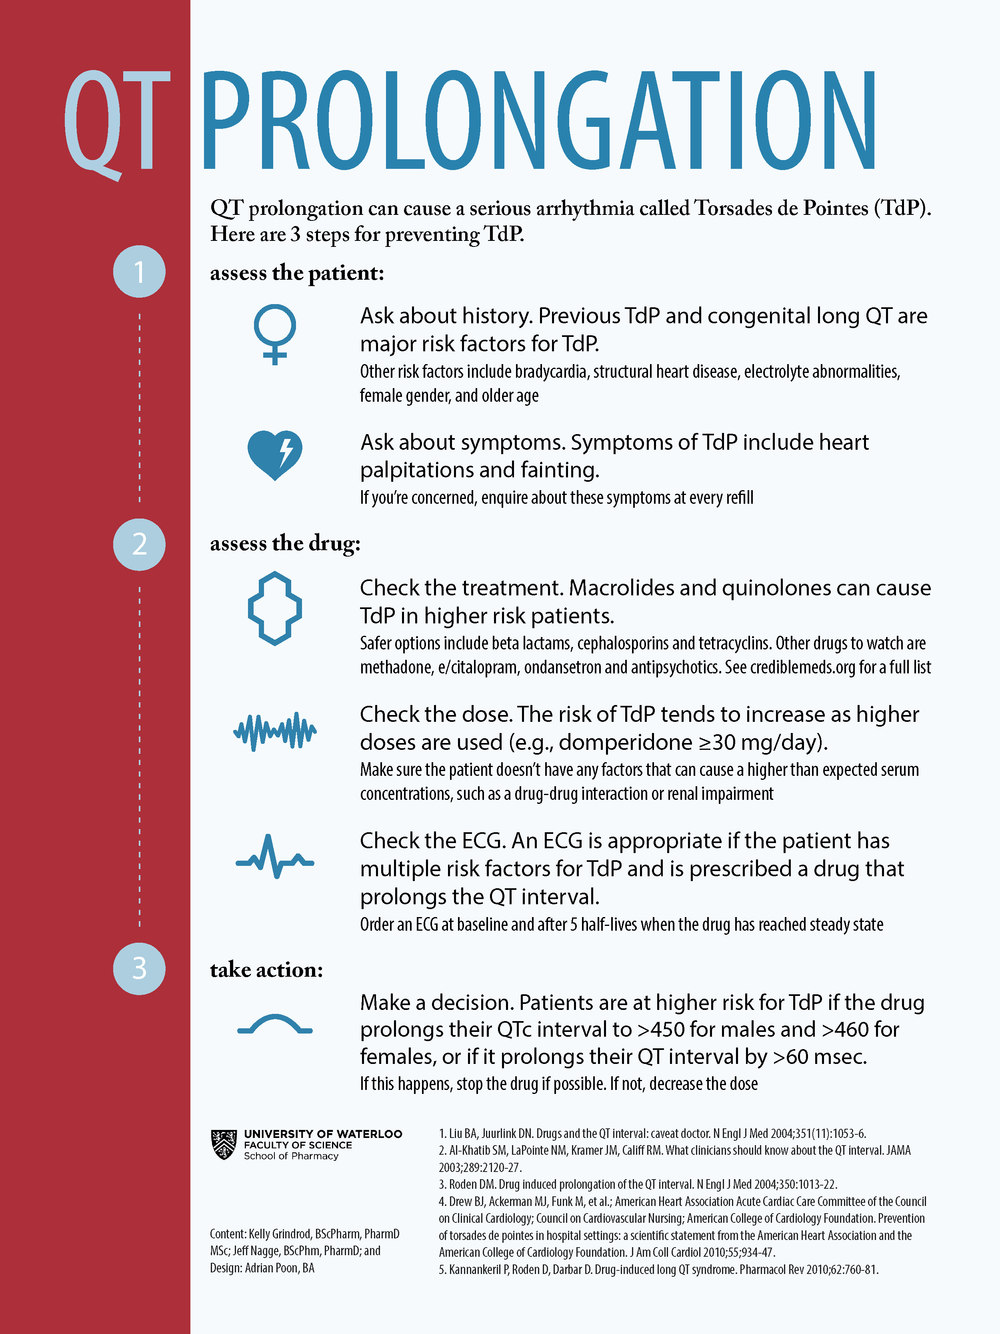 Download a PDF of the QT Prolongation Infographic Here